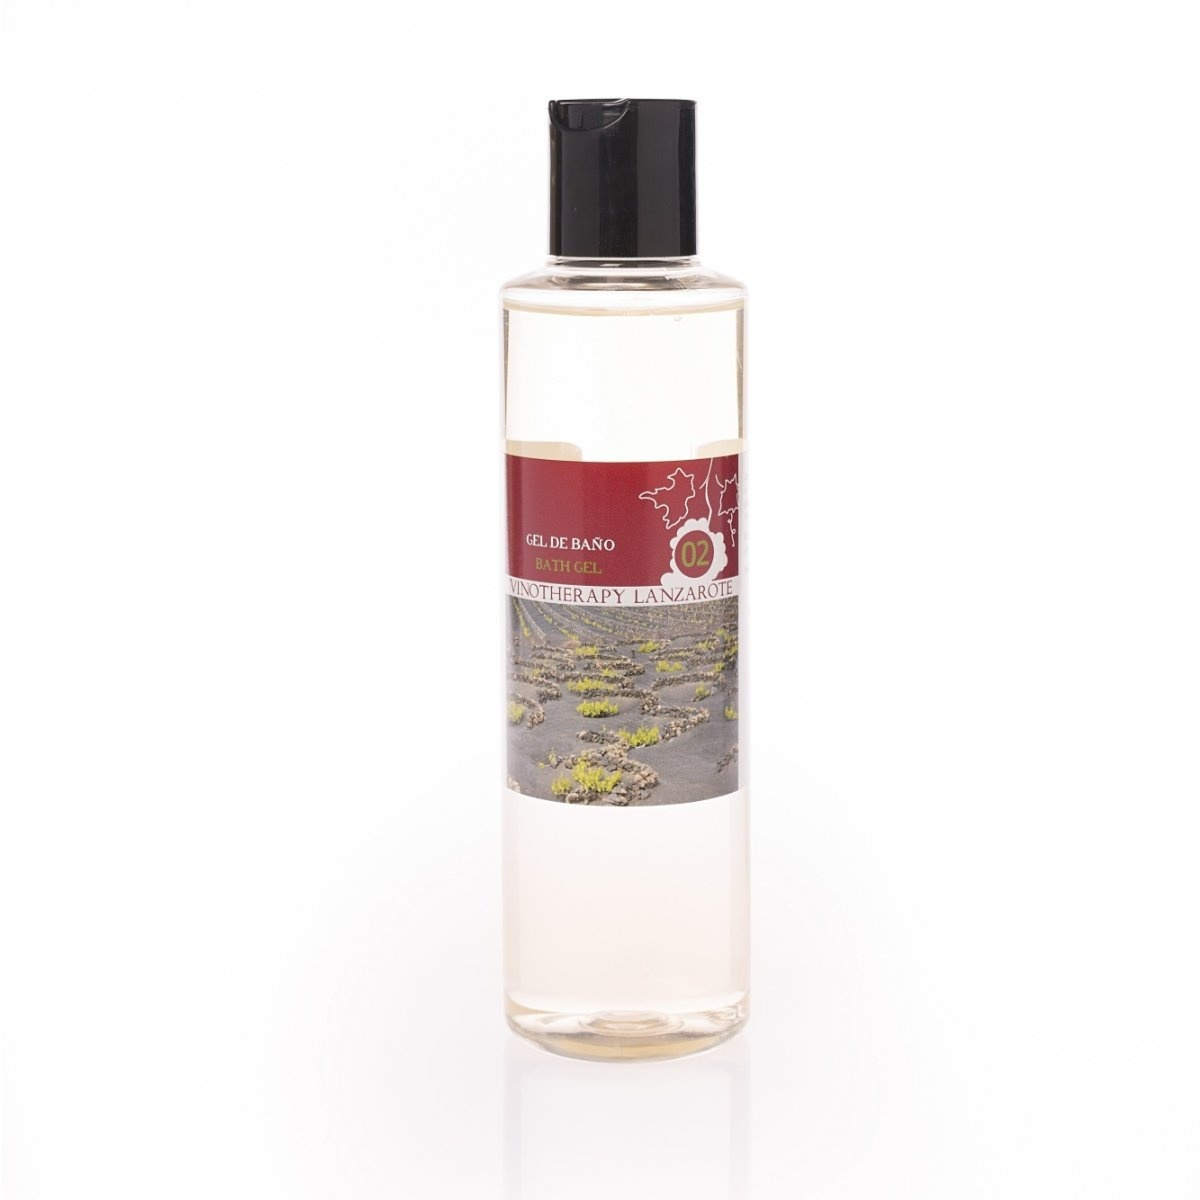 GEL DE BAÑO DE VINO 200ml